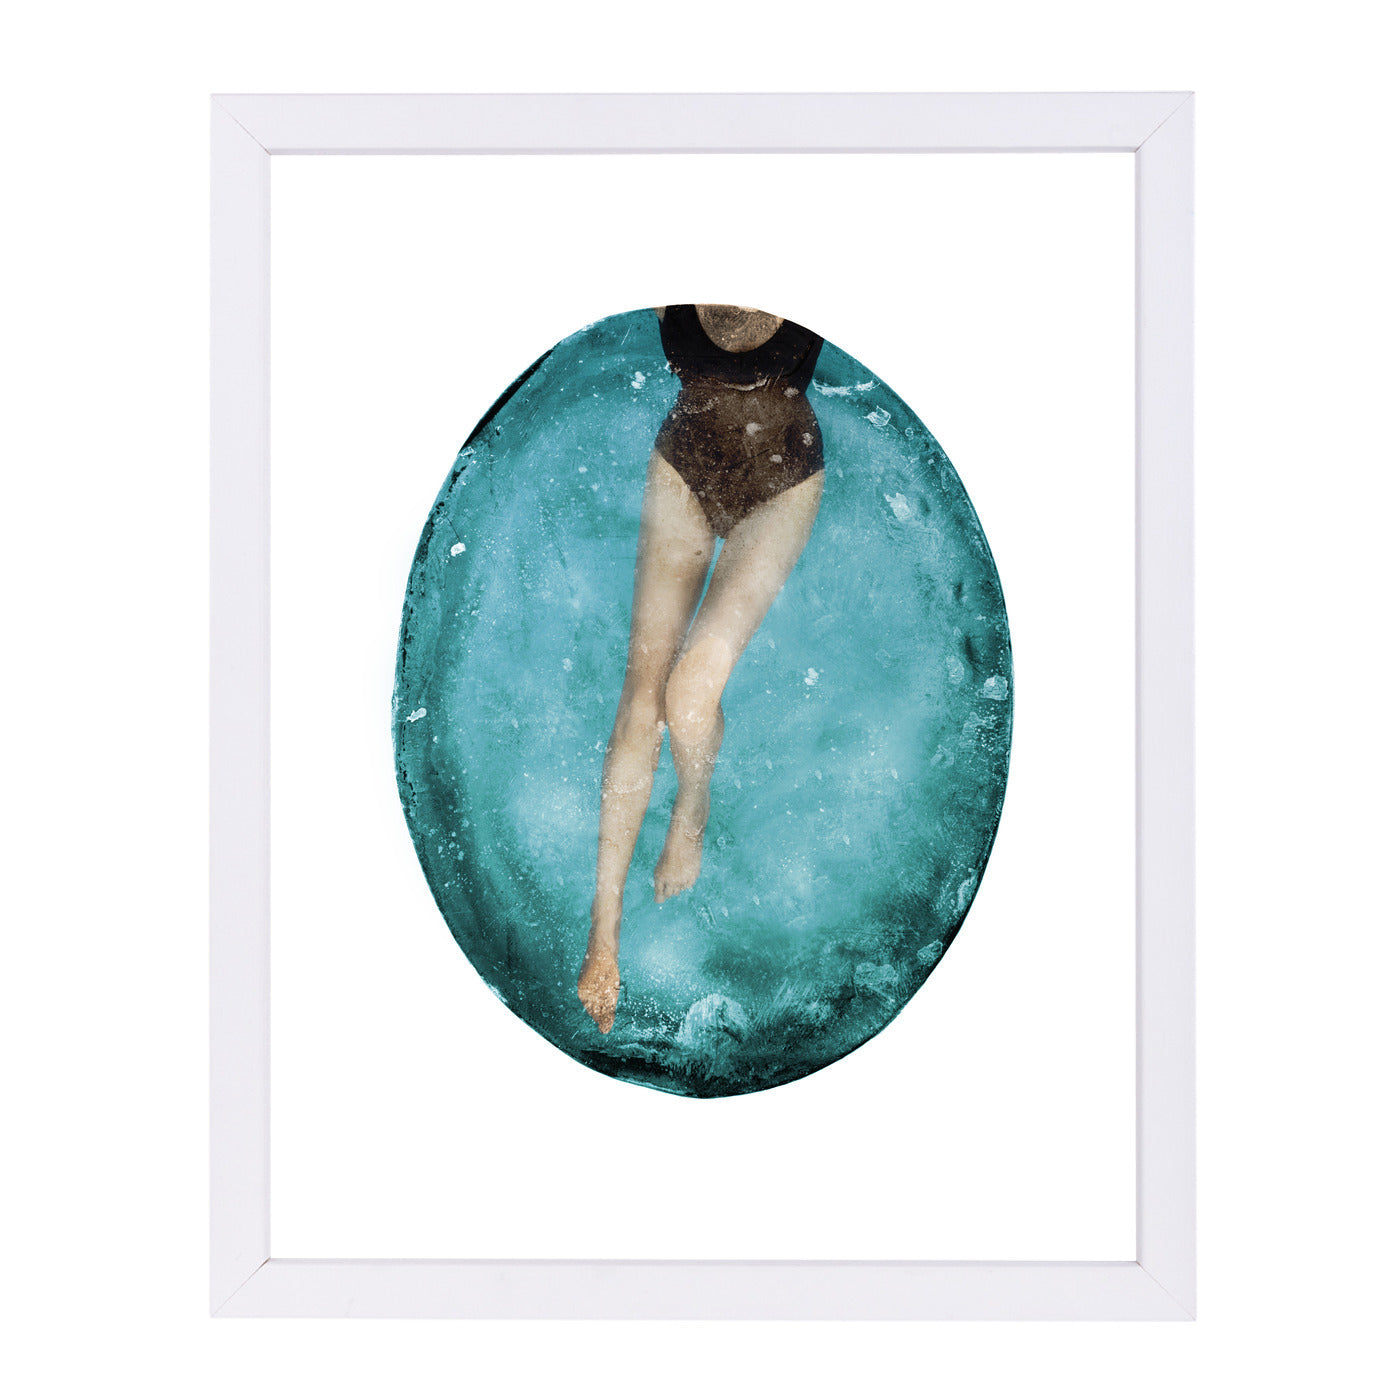 "Pool By Chaos & Wonder Design - White Framed Print, Wall Art, Chaos & Wonder Design, 8"" x 10"""